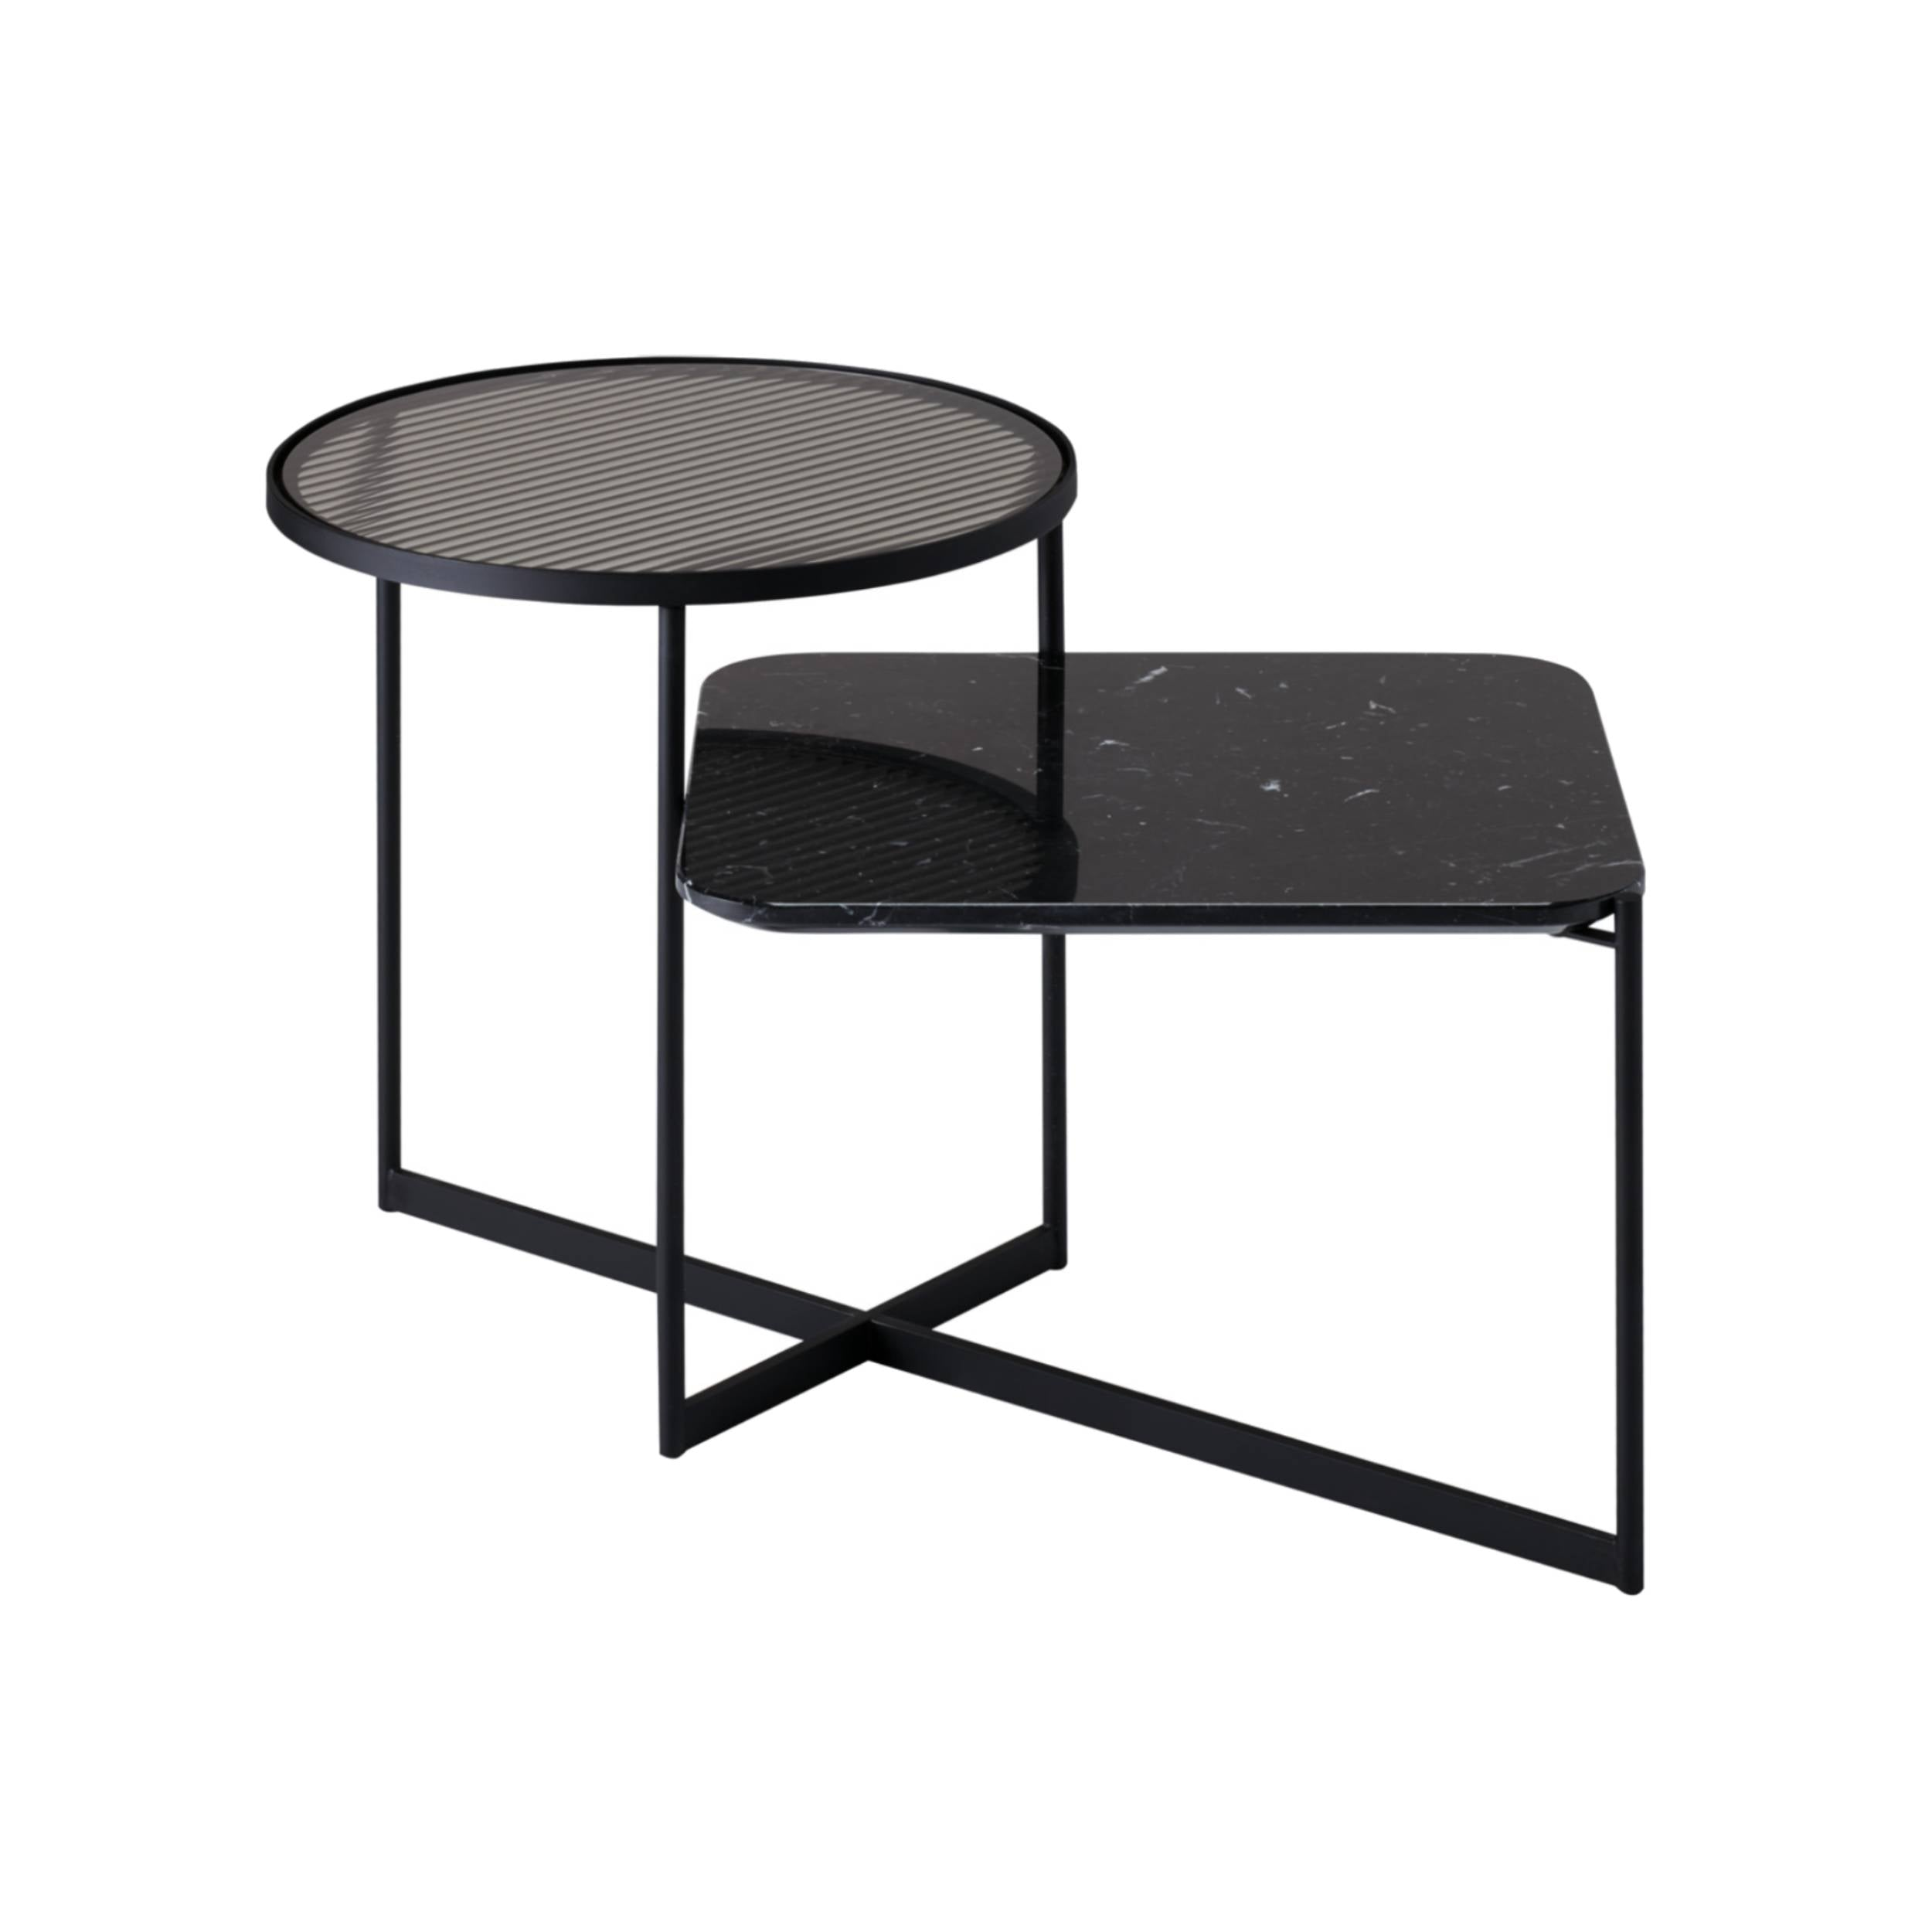 Mohana Side Table Medium: Black + Fluted Glass + Black Marble